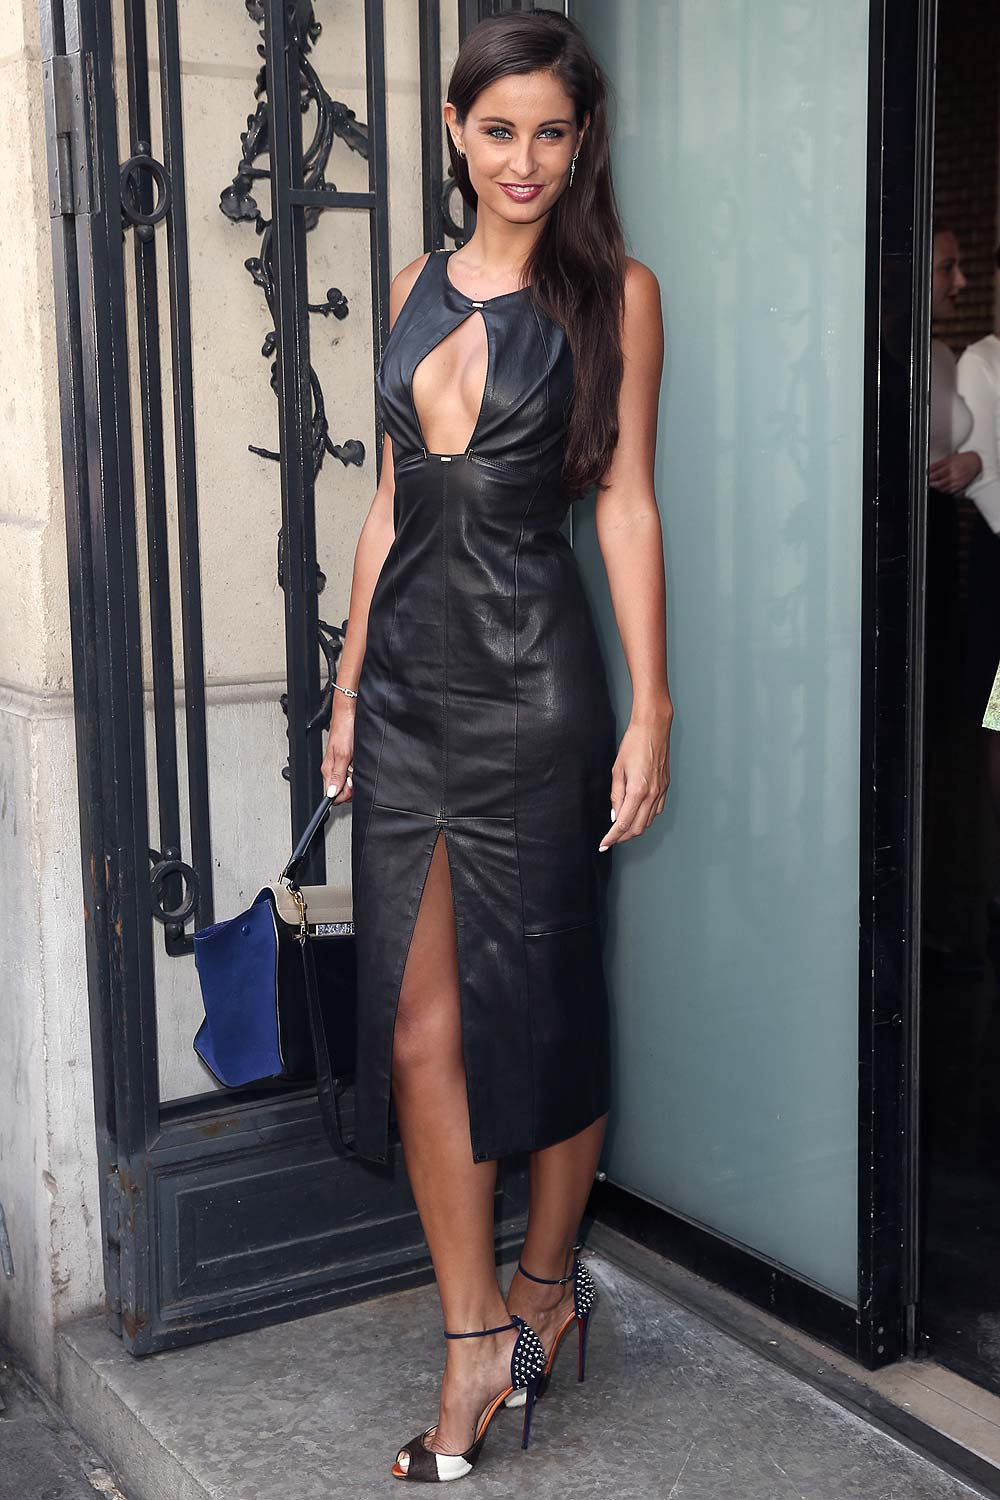 Malika Menard attends Jean Paul Gaultier show - Leather Celebrities